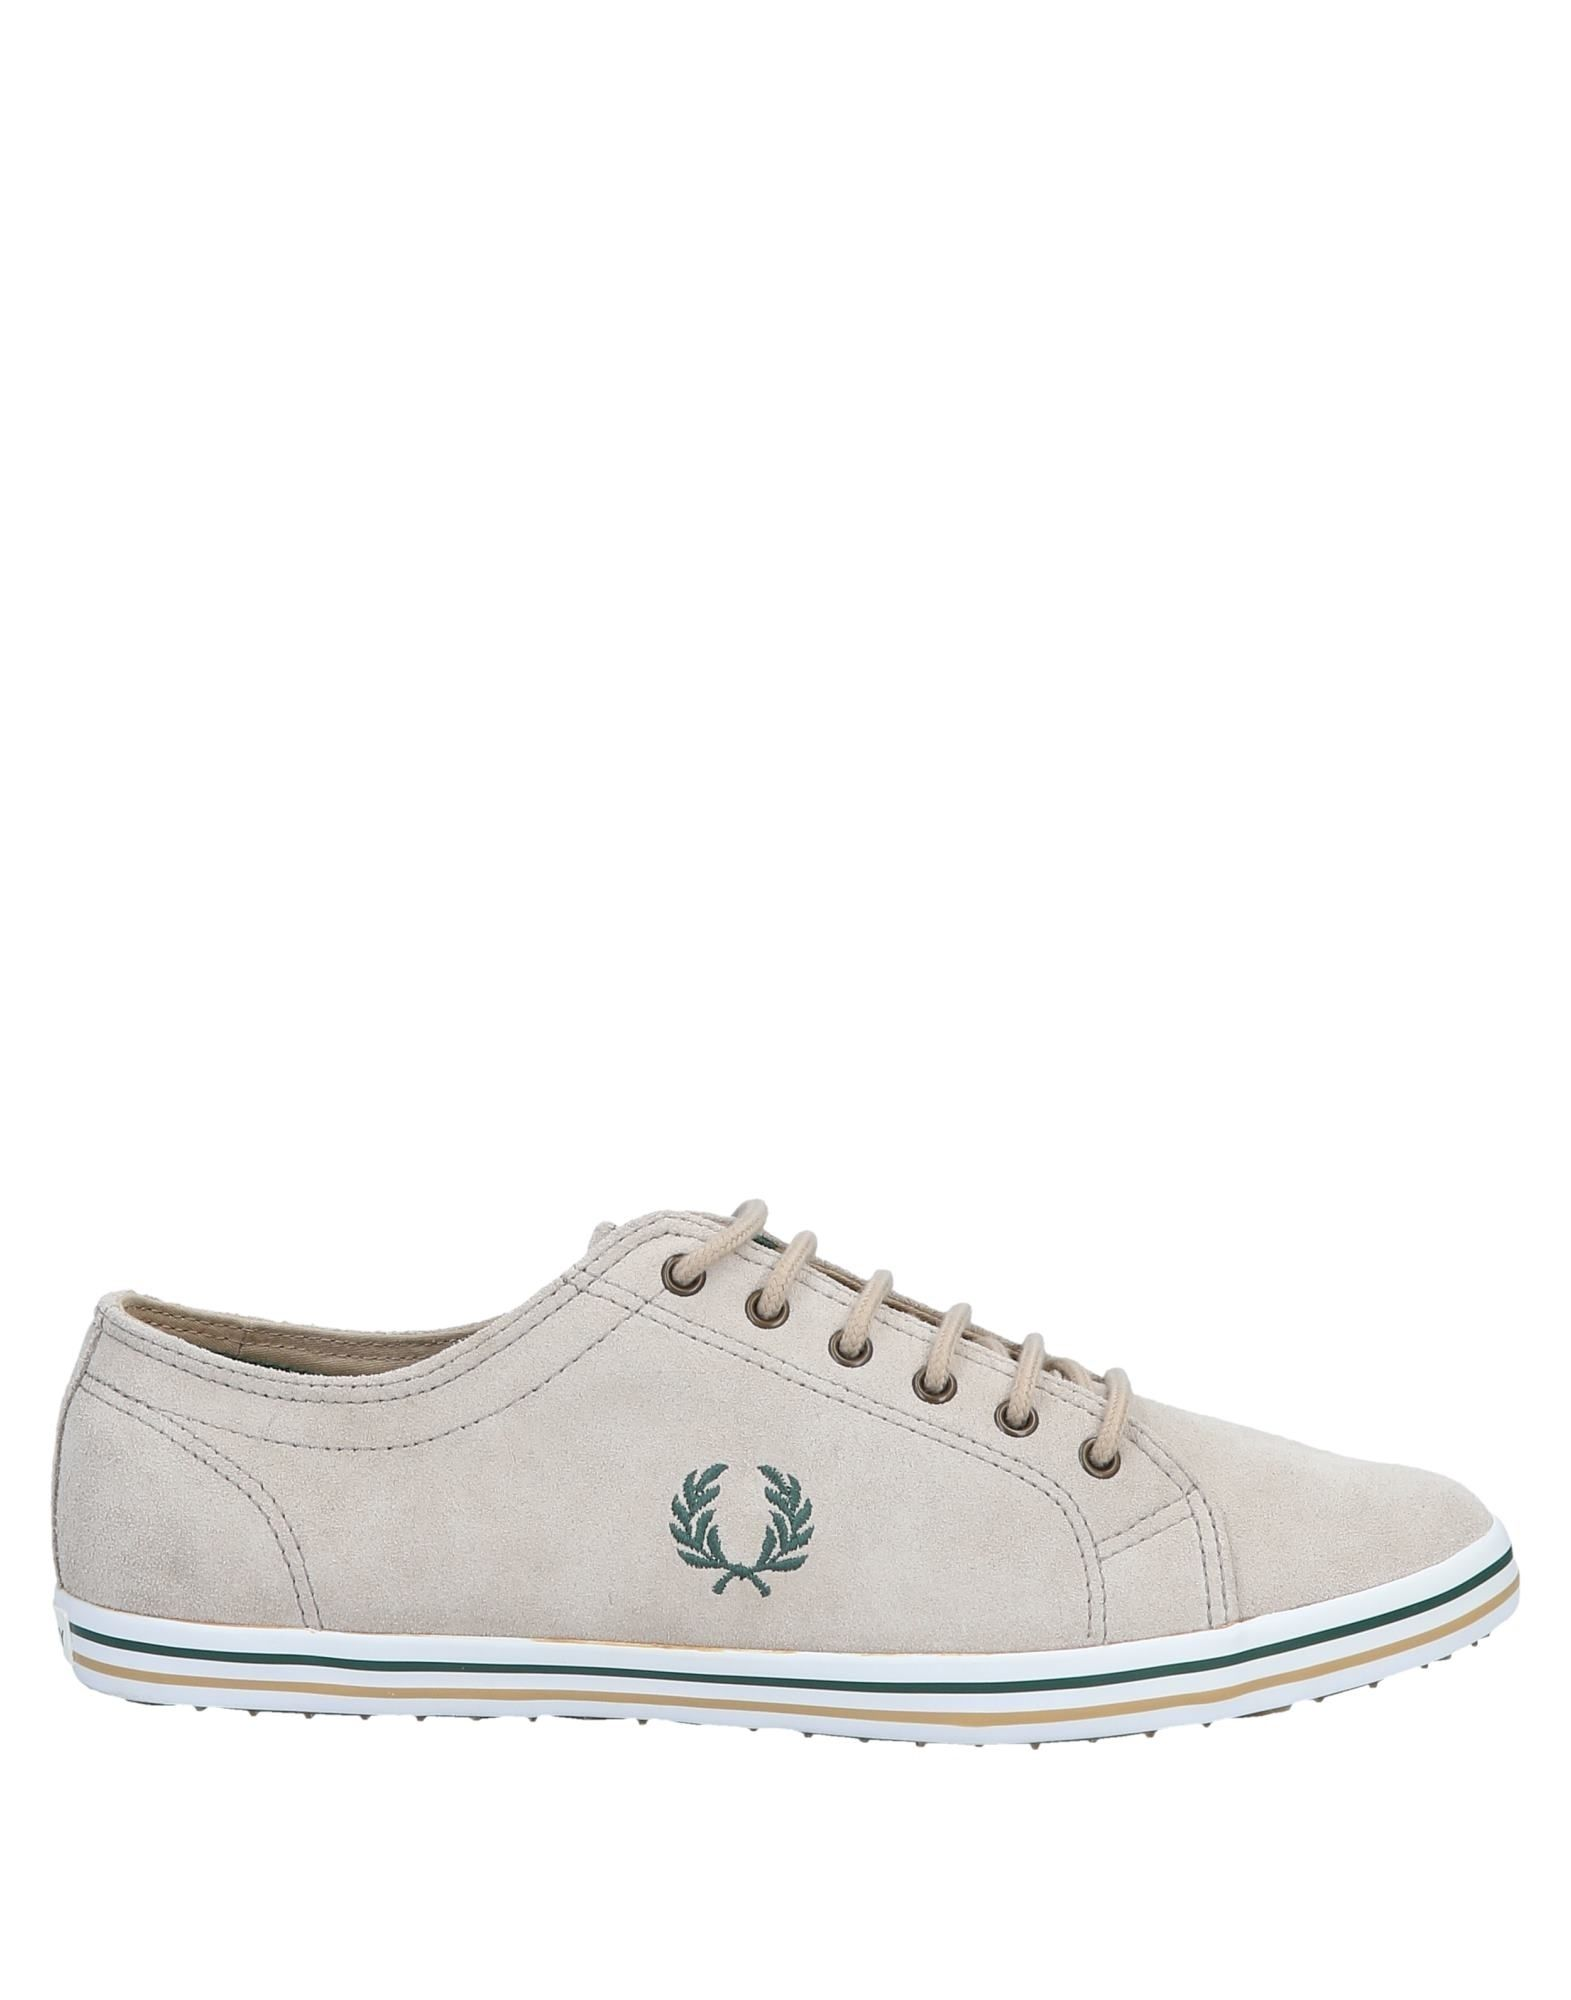 FRED PERRY Низкие кеды и кроссовки кеды кроссовки низкие fred perry kingston leather black